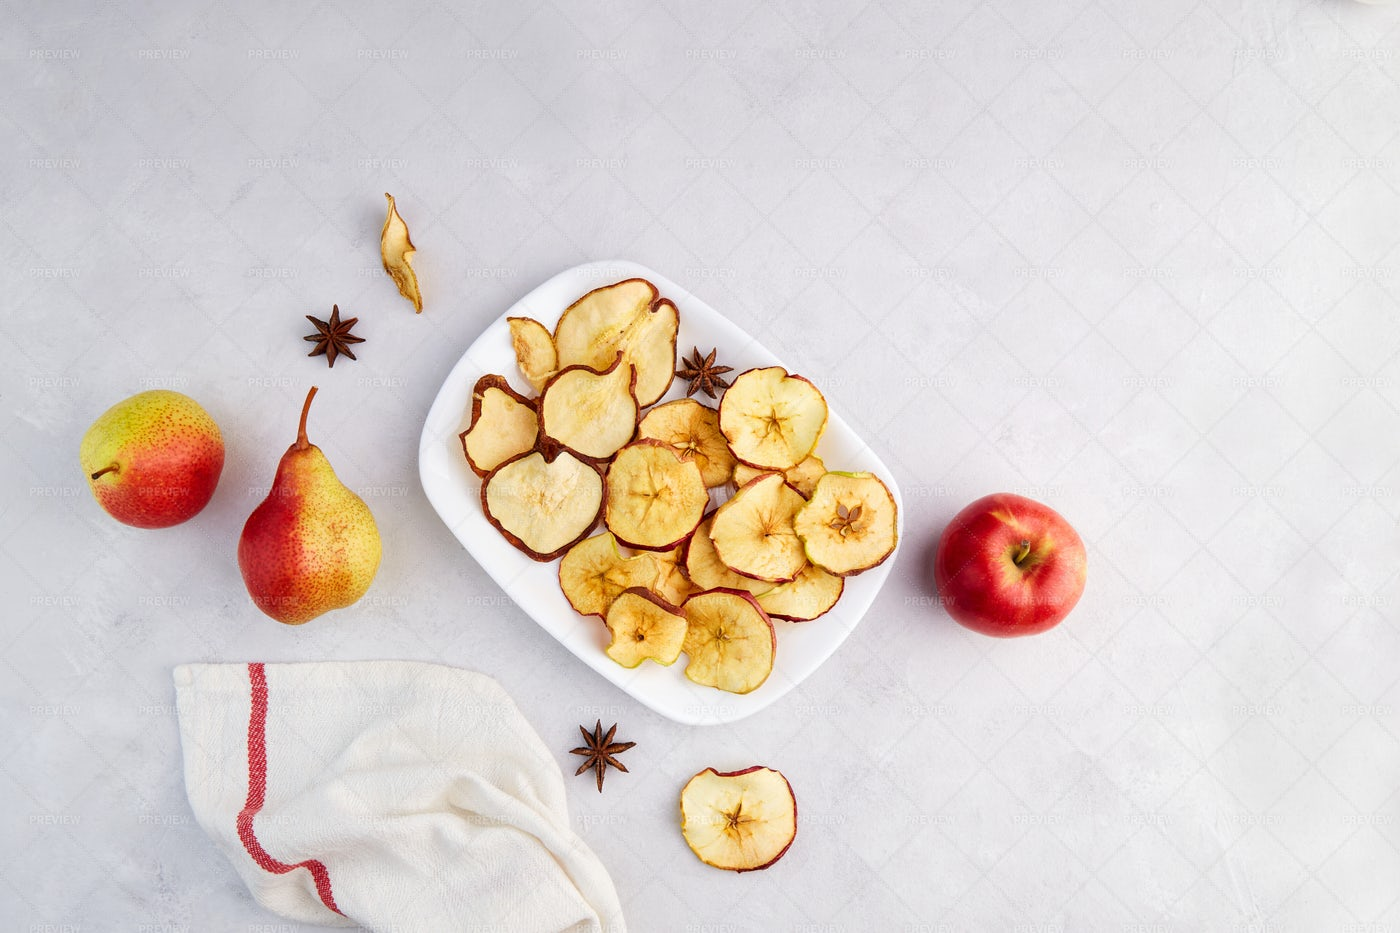 Dried Apples And Pears: Stock Photos